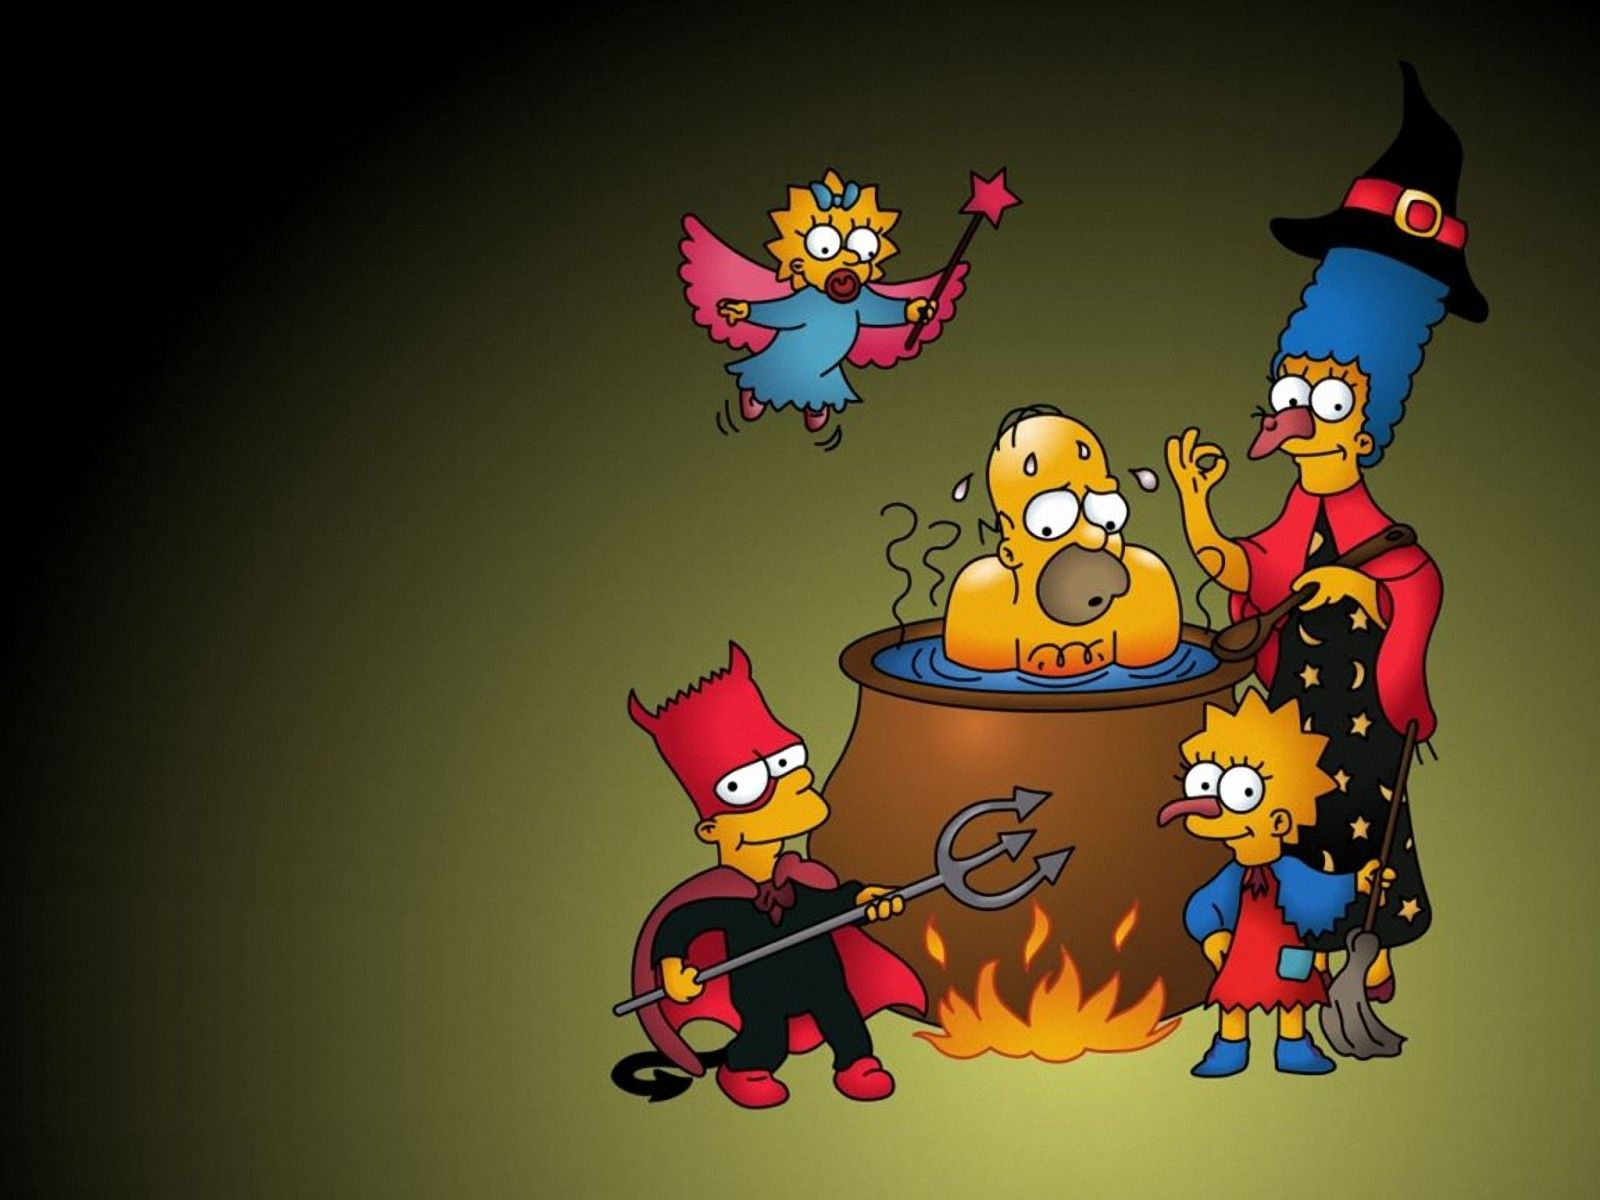 Hd Wallpapers The Simpsons The Simpsons Family Simpsons